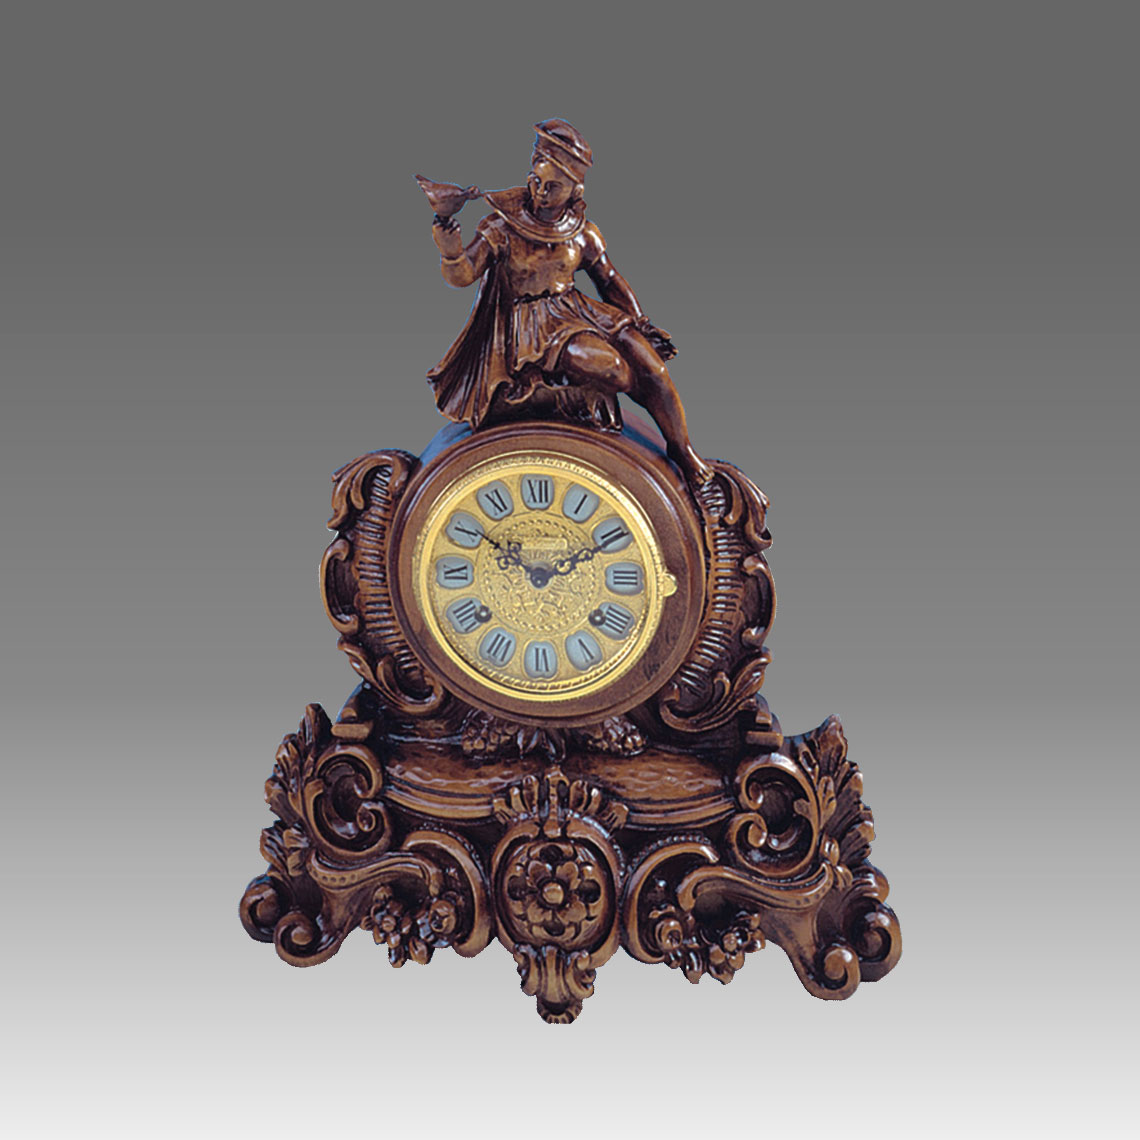 Mante Clock, Table Clock, Cimn Clock, Art.332/1 walnut - Bim Bam melody on Bells, gilt gold round dial